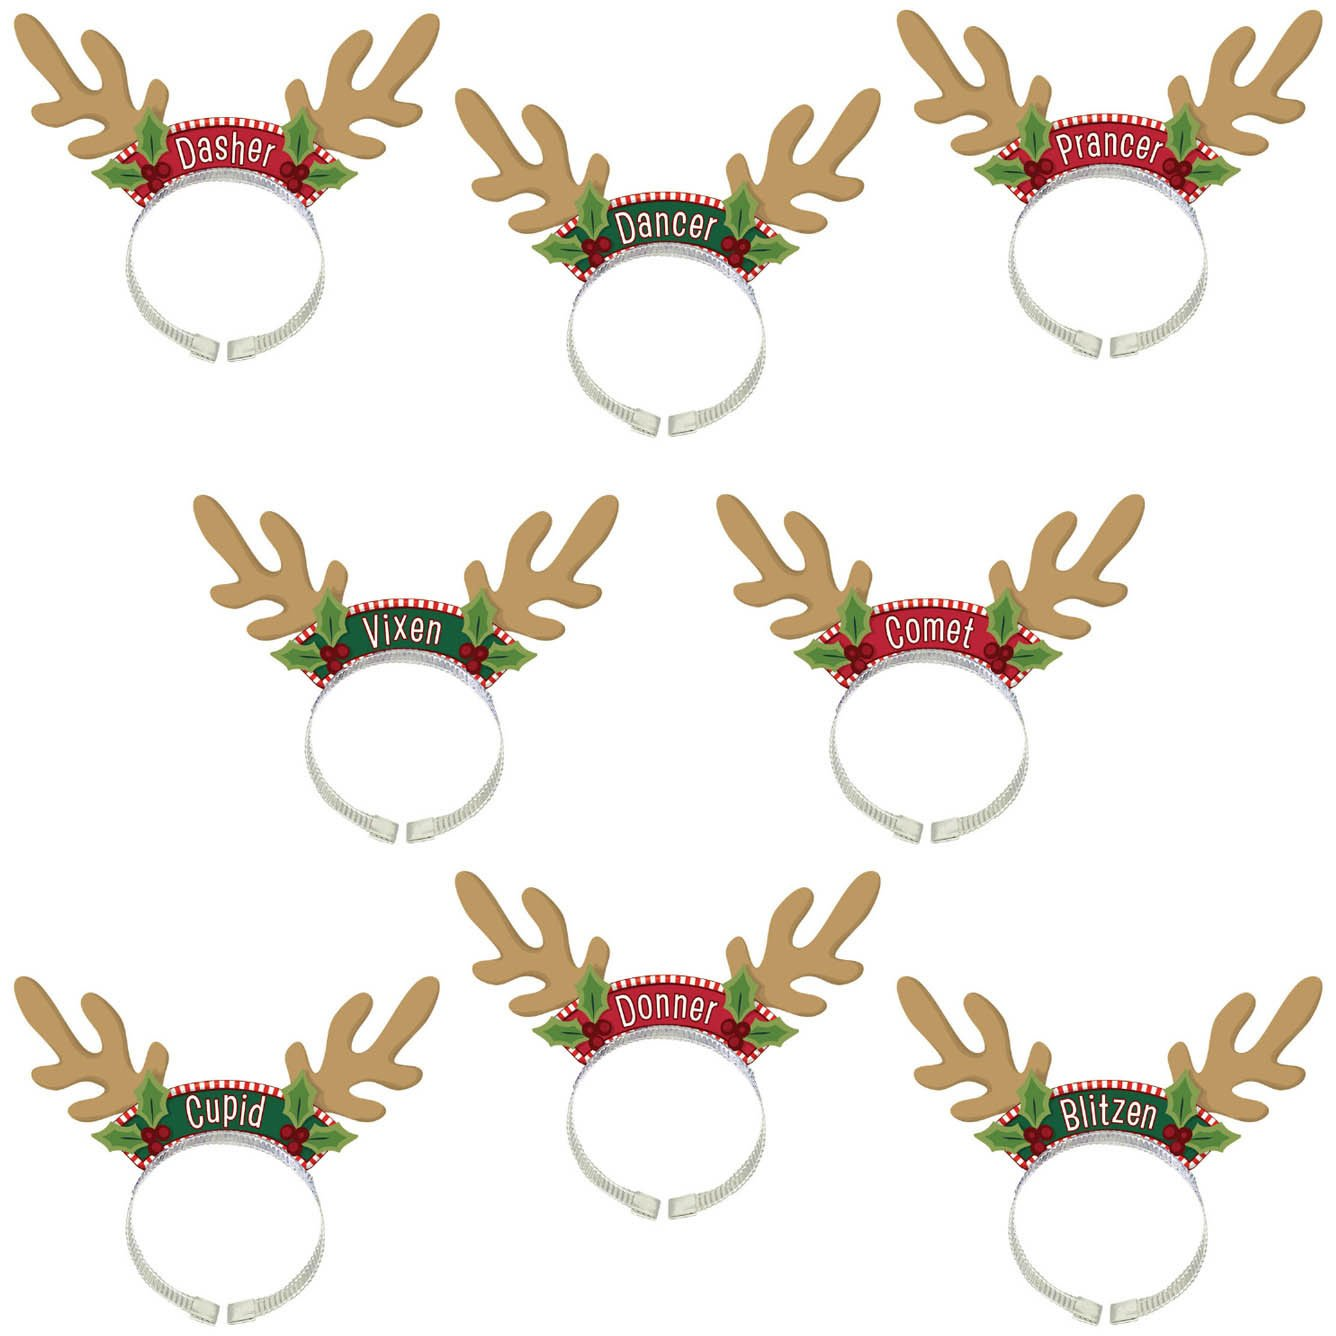 Reindeer headband review ebooks